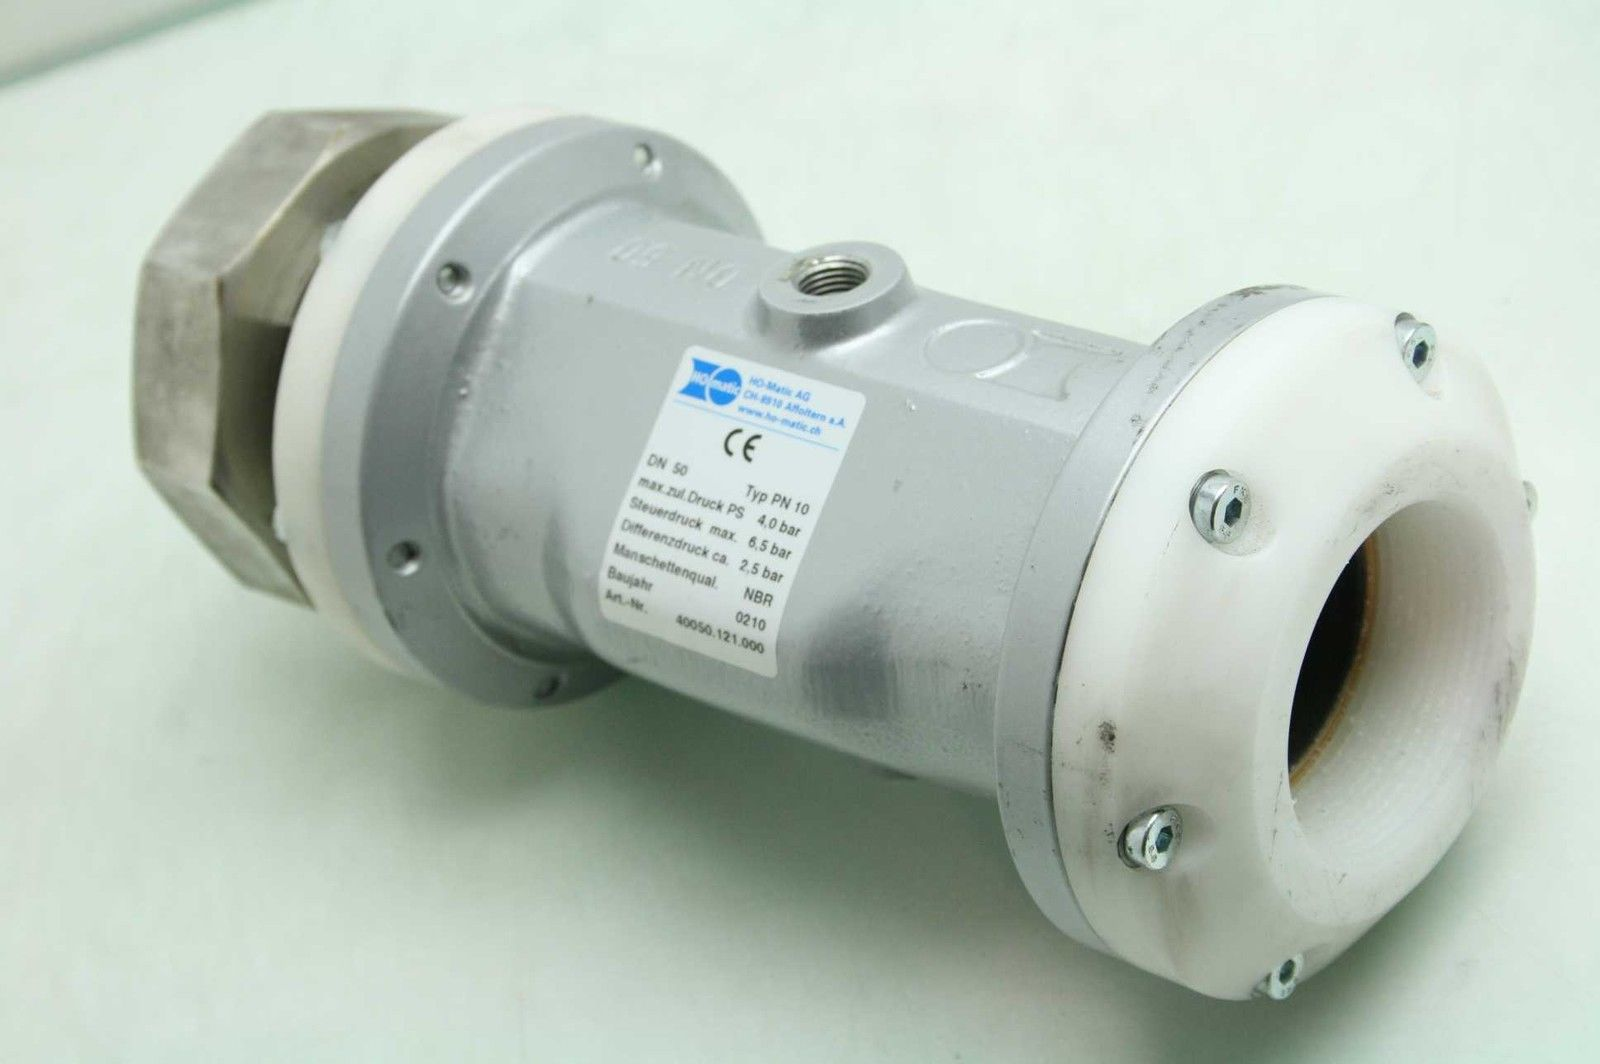 hight resolution of ho matic 40050121000 tubing pinch valve size dn 50 type pn 10 0210 used 172265758707